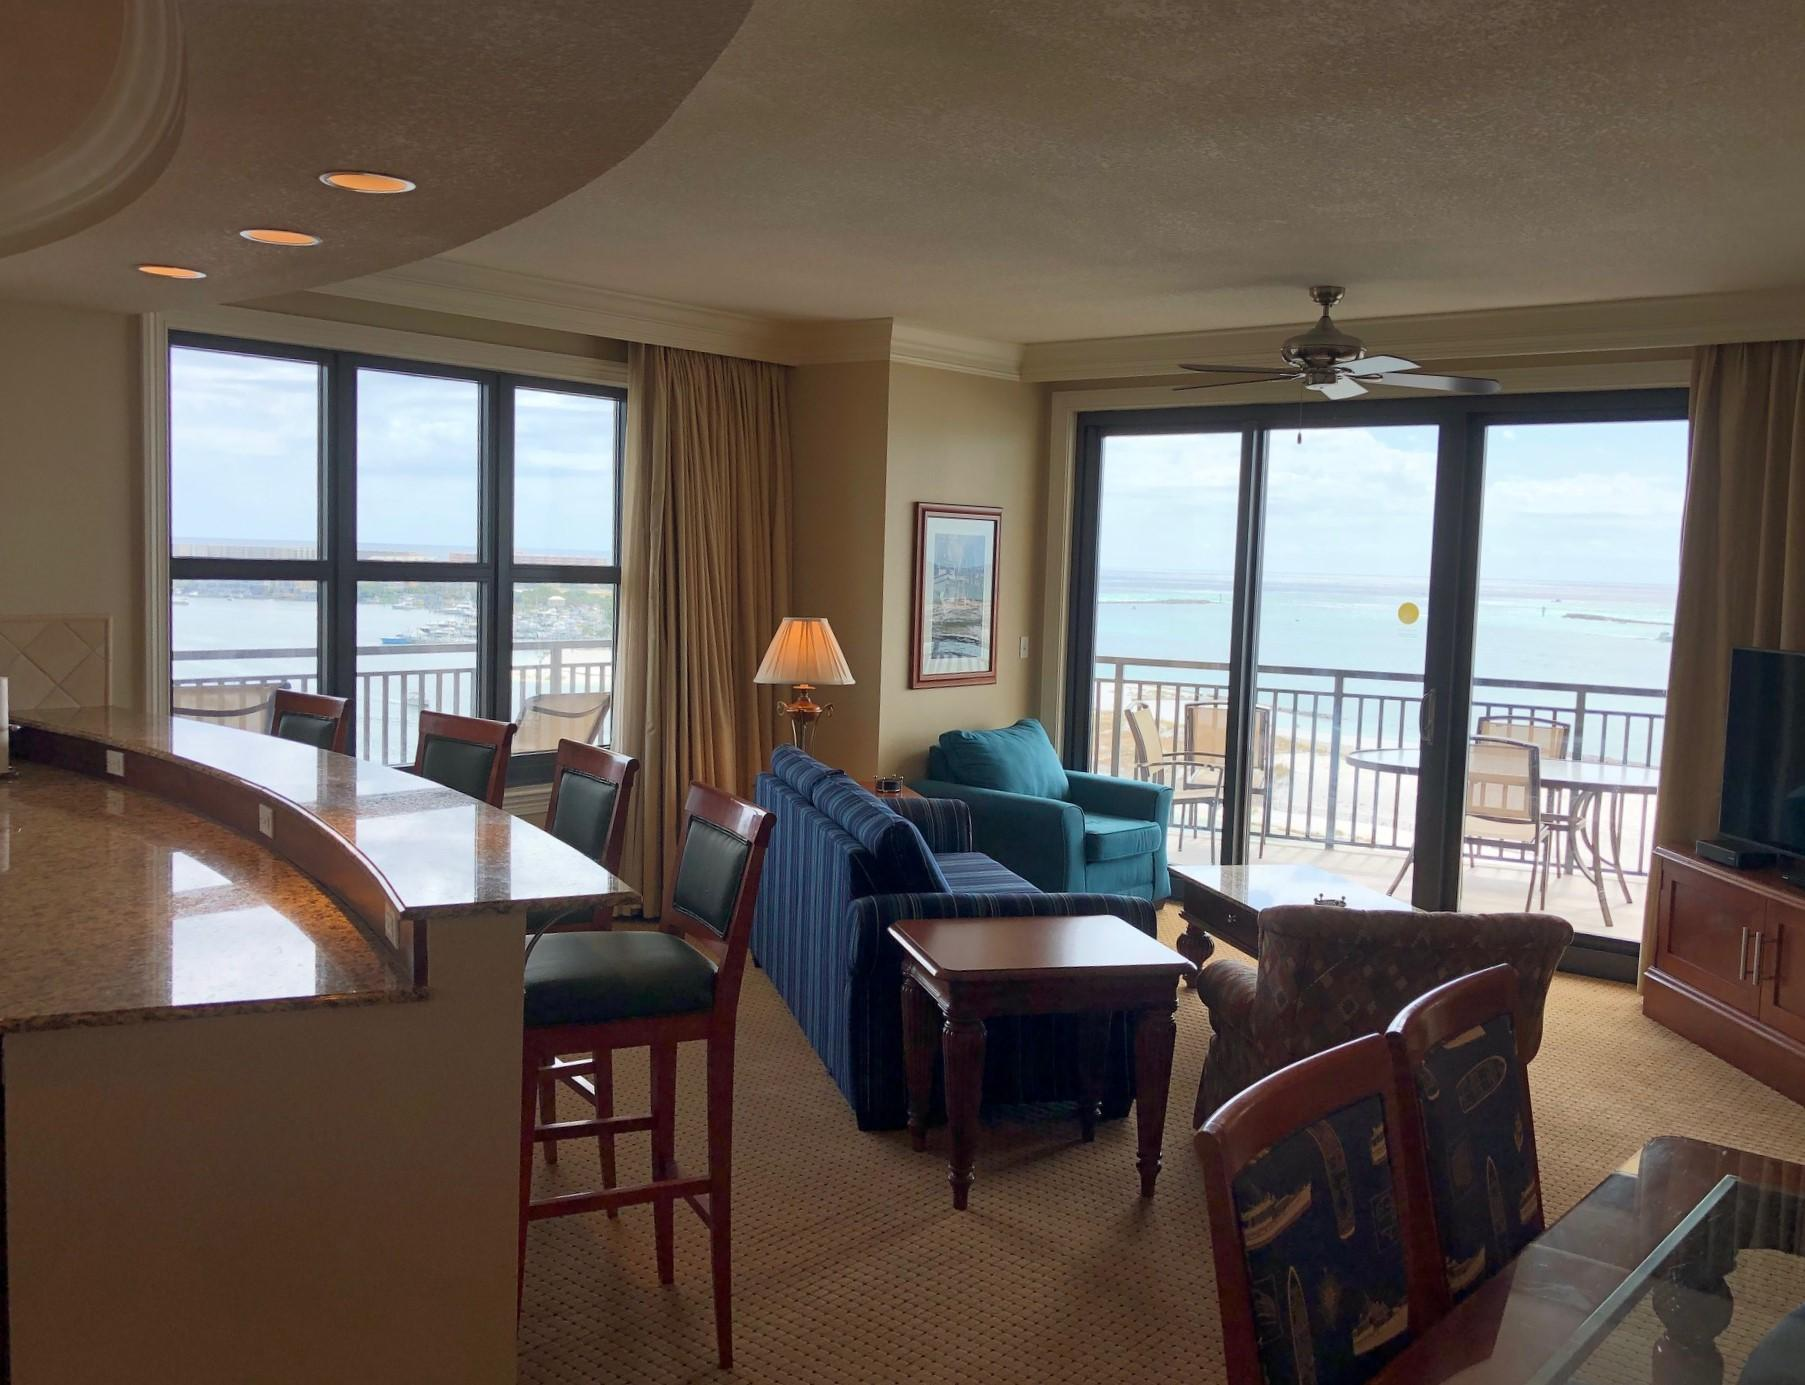 A 4 Bedroom 4 Bedroom Emerald Grande Timeshare